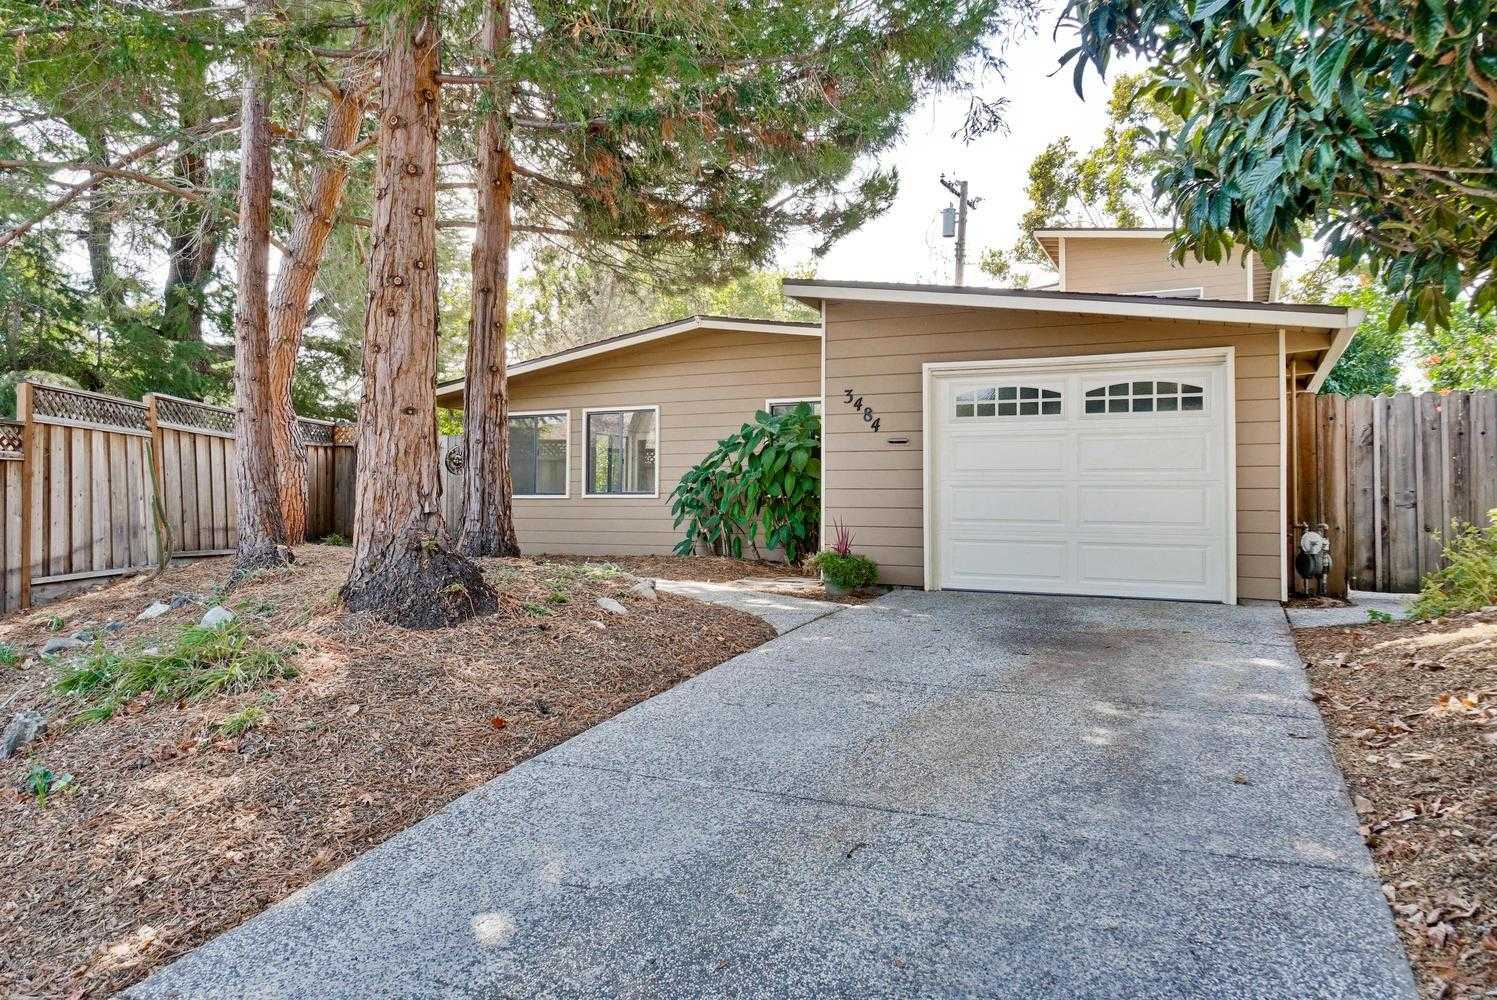 $3,198,000 - 4Br/3Ba -  for Sale in Palo Alto